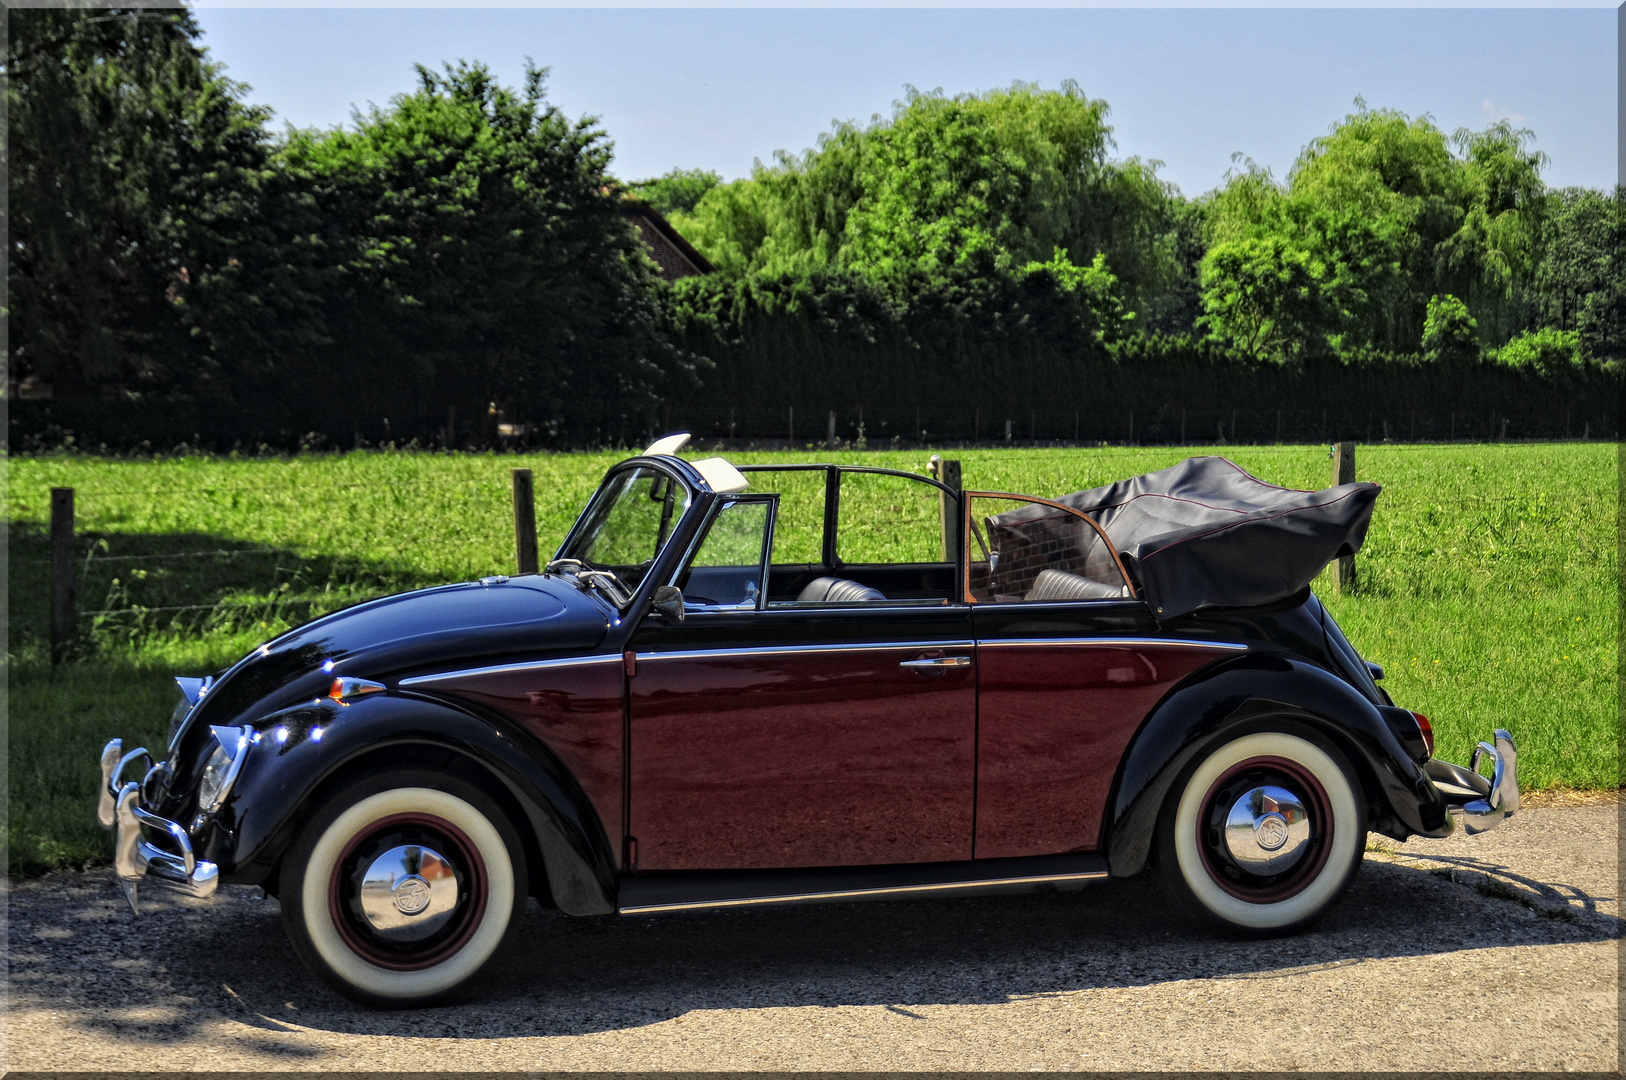 vw k fer cabrio foto bild oldtimer youngtimer autos. Black Bedroom Furniture Sets. Home Design Ideas